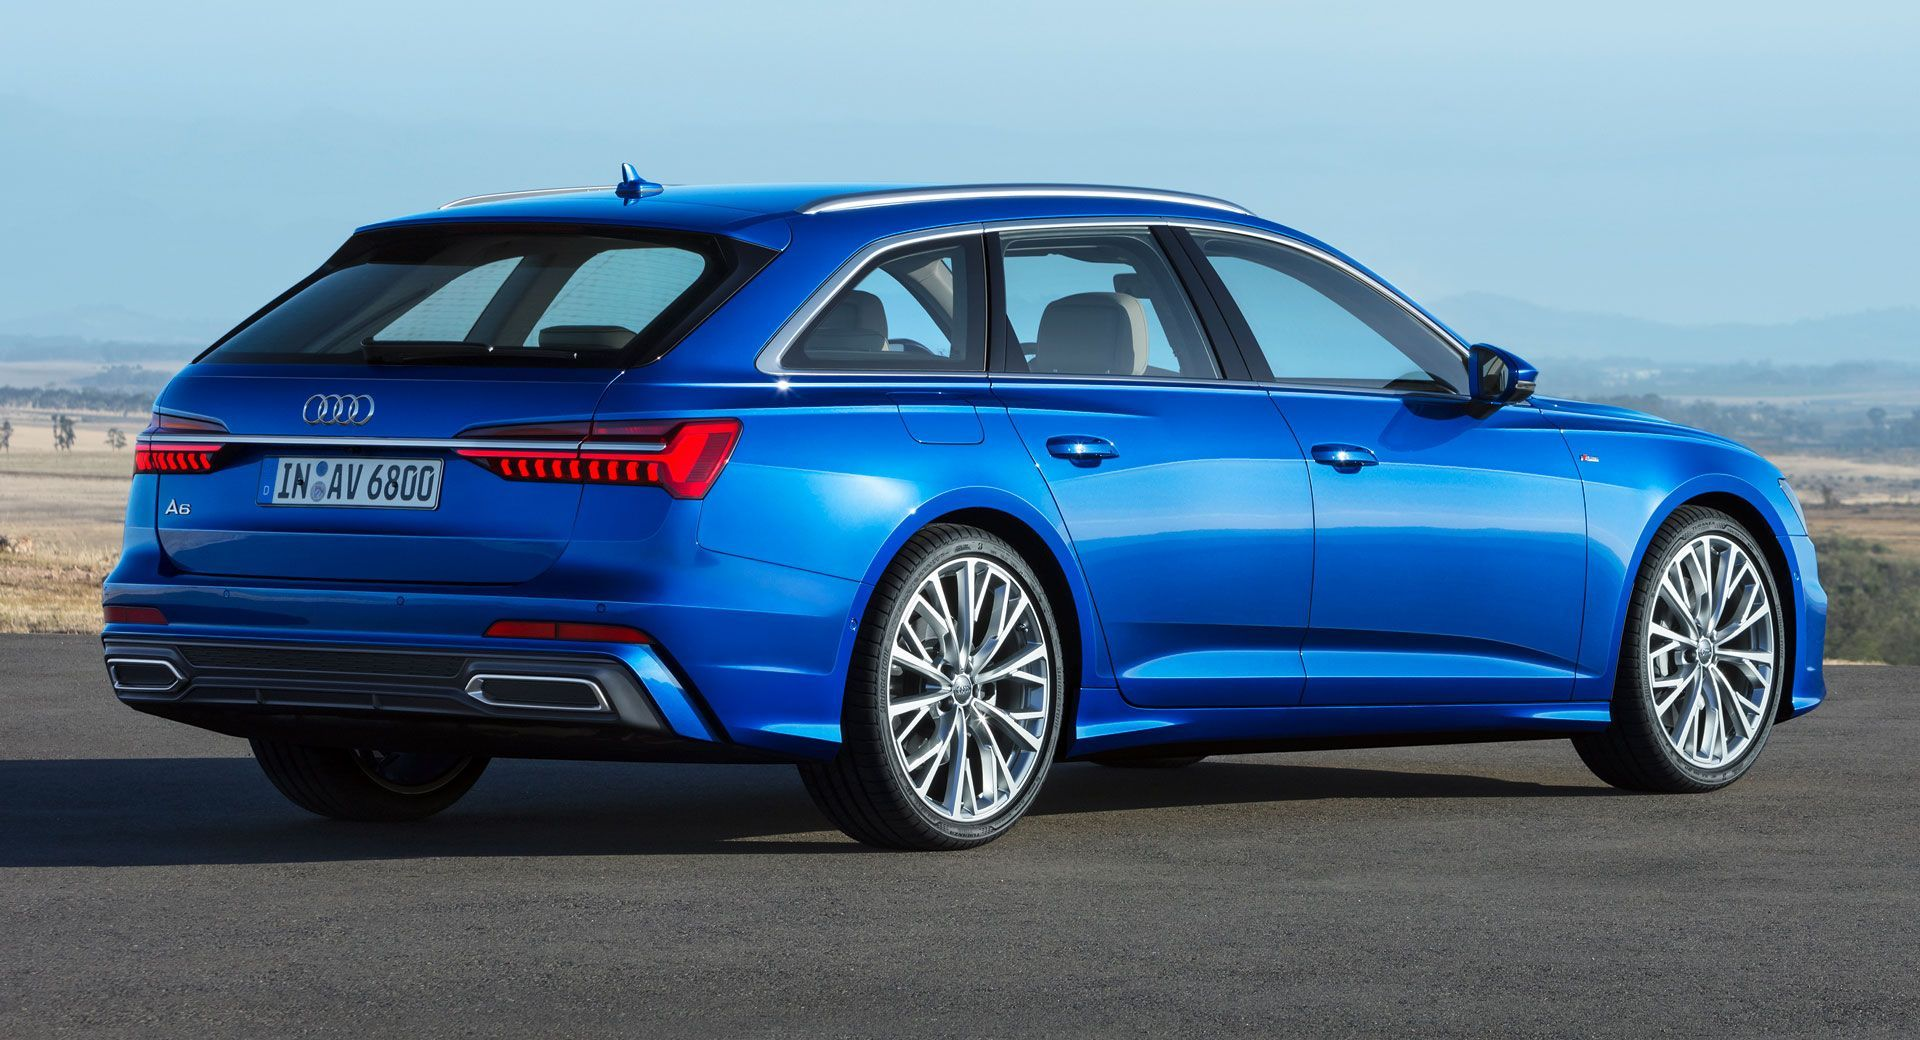 2019 Audi A6 Avant Is Here Looking More Handsome Than Ever Carscoops Audi A6 Avant Audi A6 Allroad Audi A6